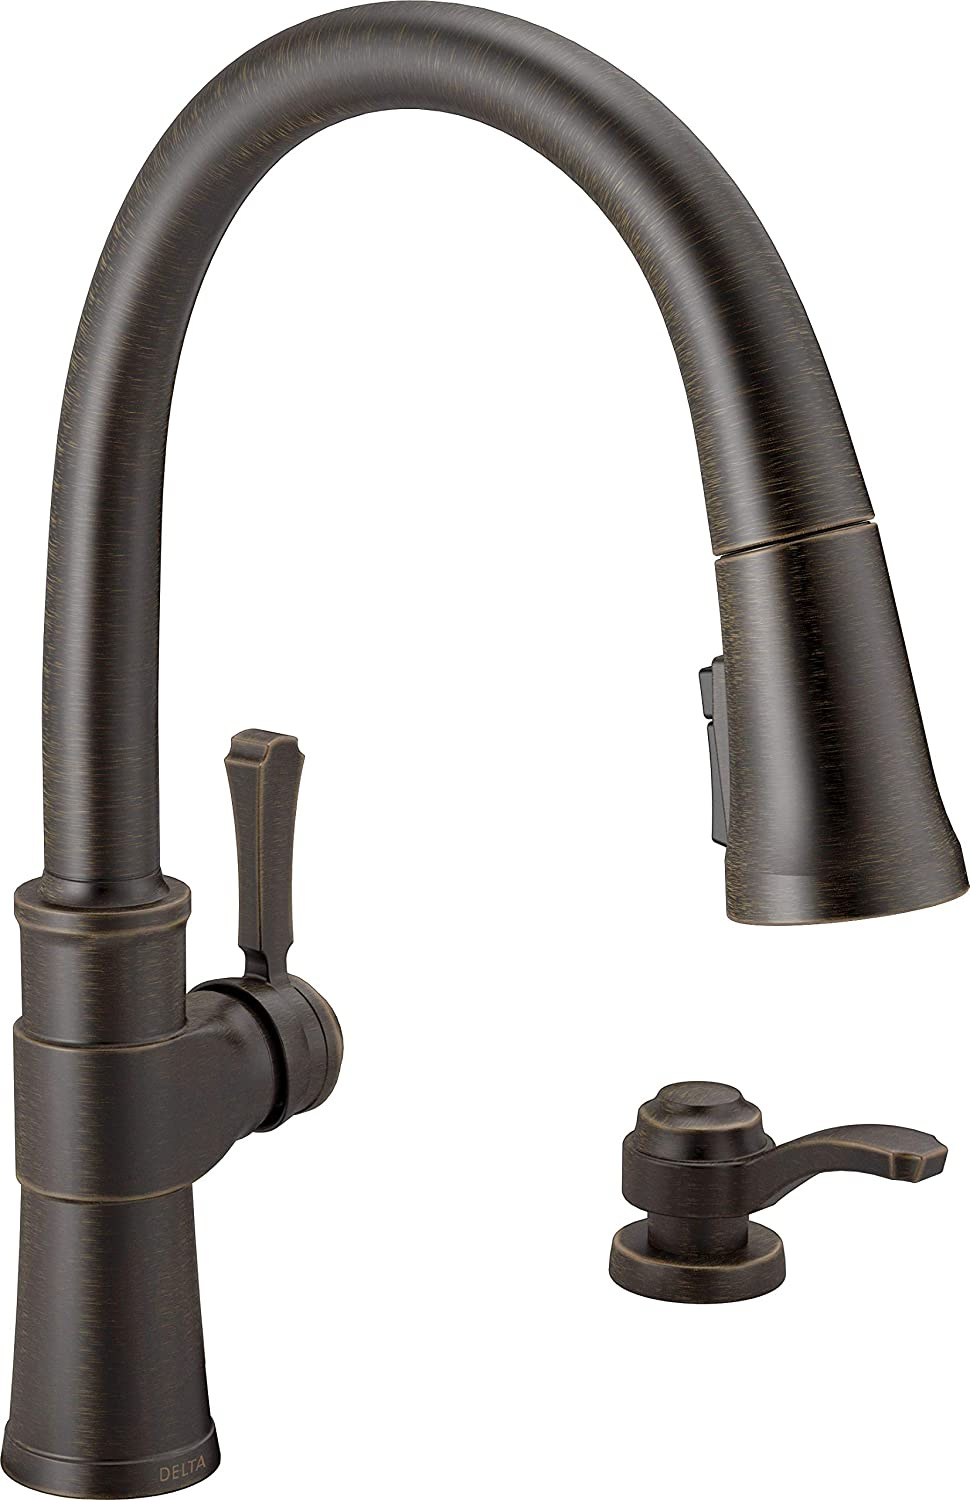 Delta Faucet Spargo Single-Handle Kitchen Sink Faucet with Pull Down Sprayer, ShieldSpray Technology and Magnetic Docking Spray Head, Venetian Bronze 19964Z-RBSD-DST